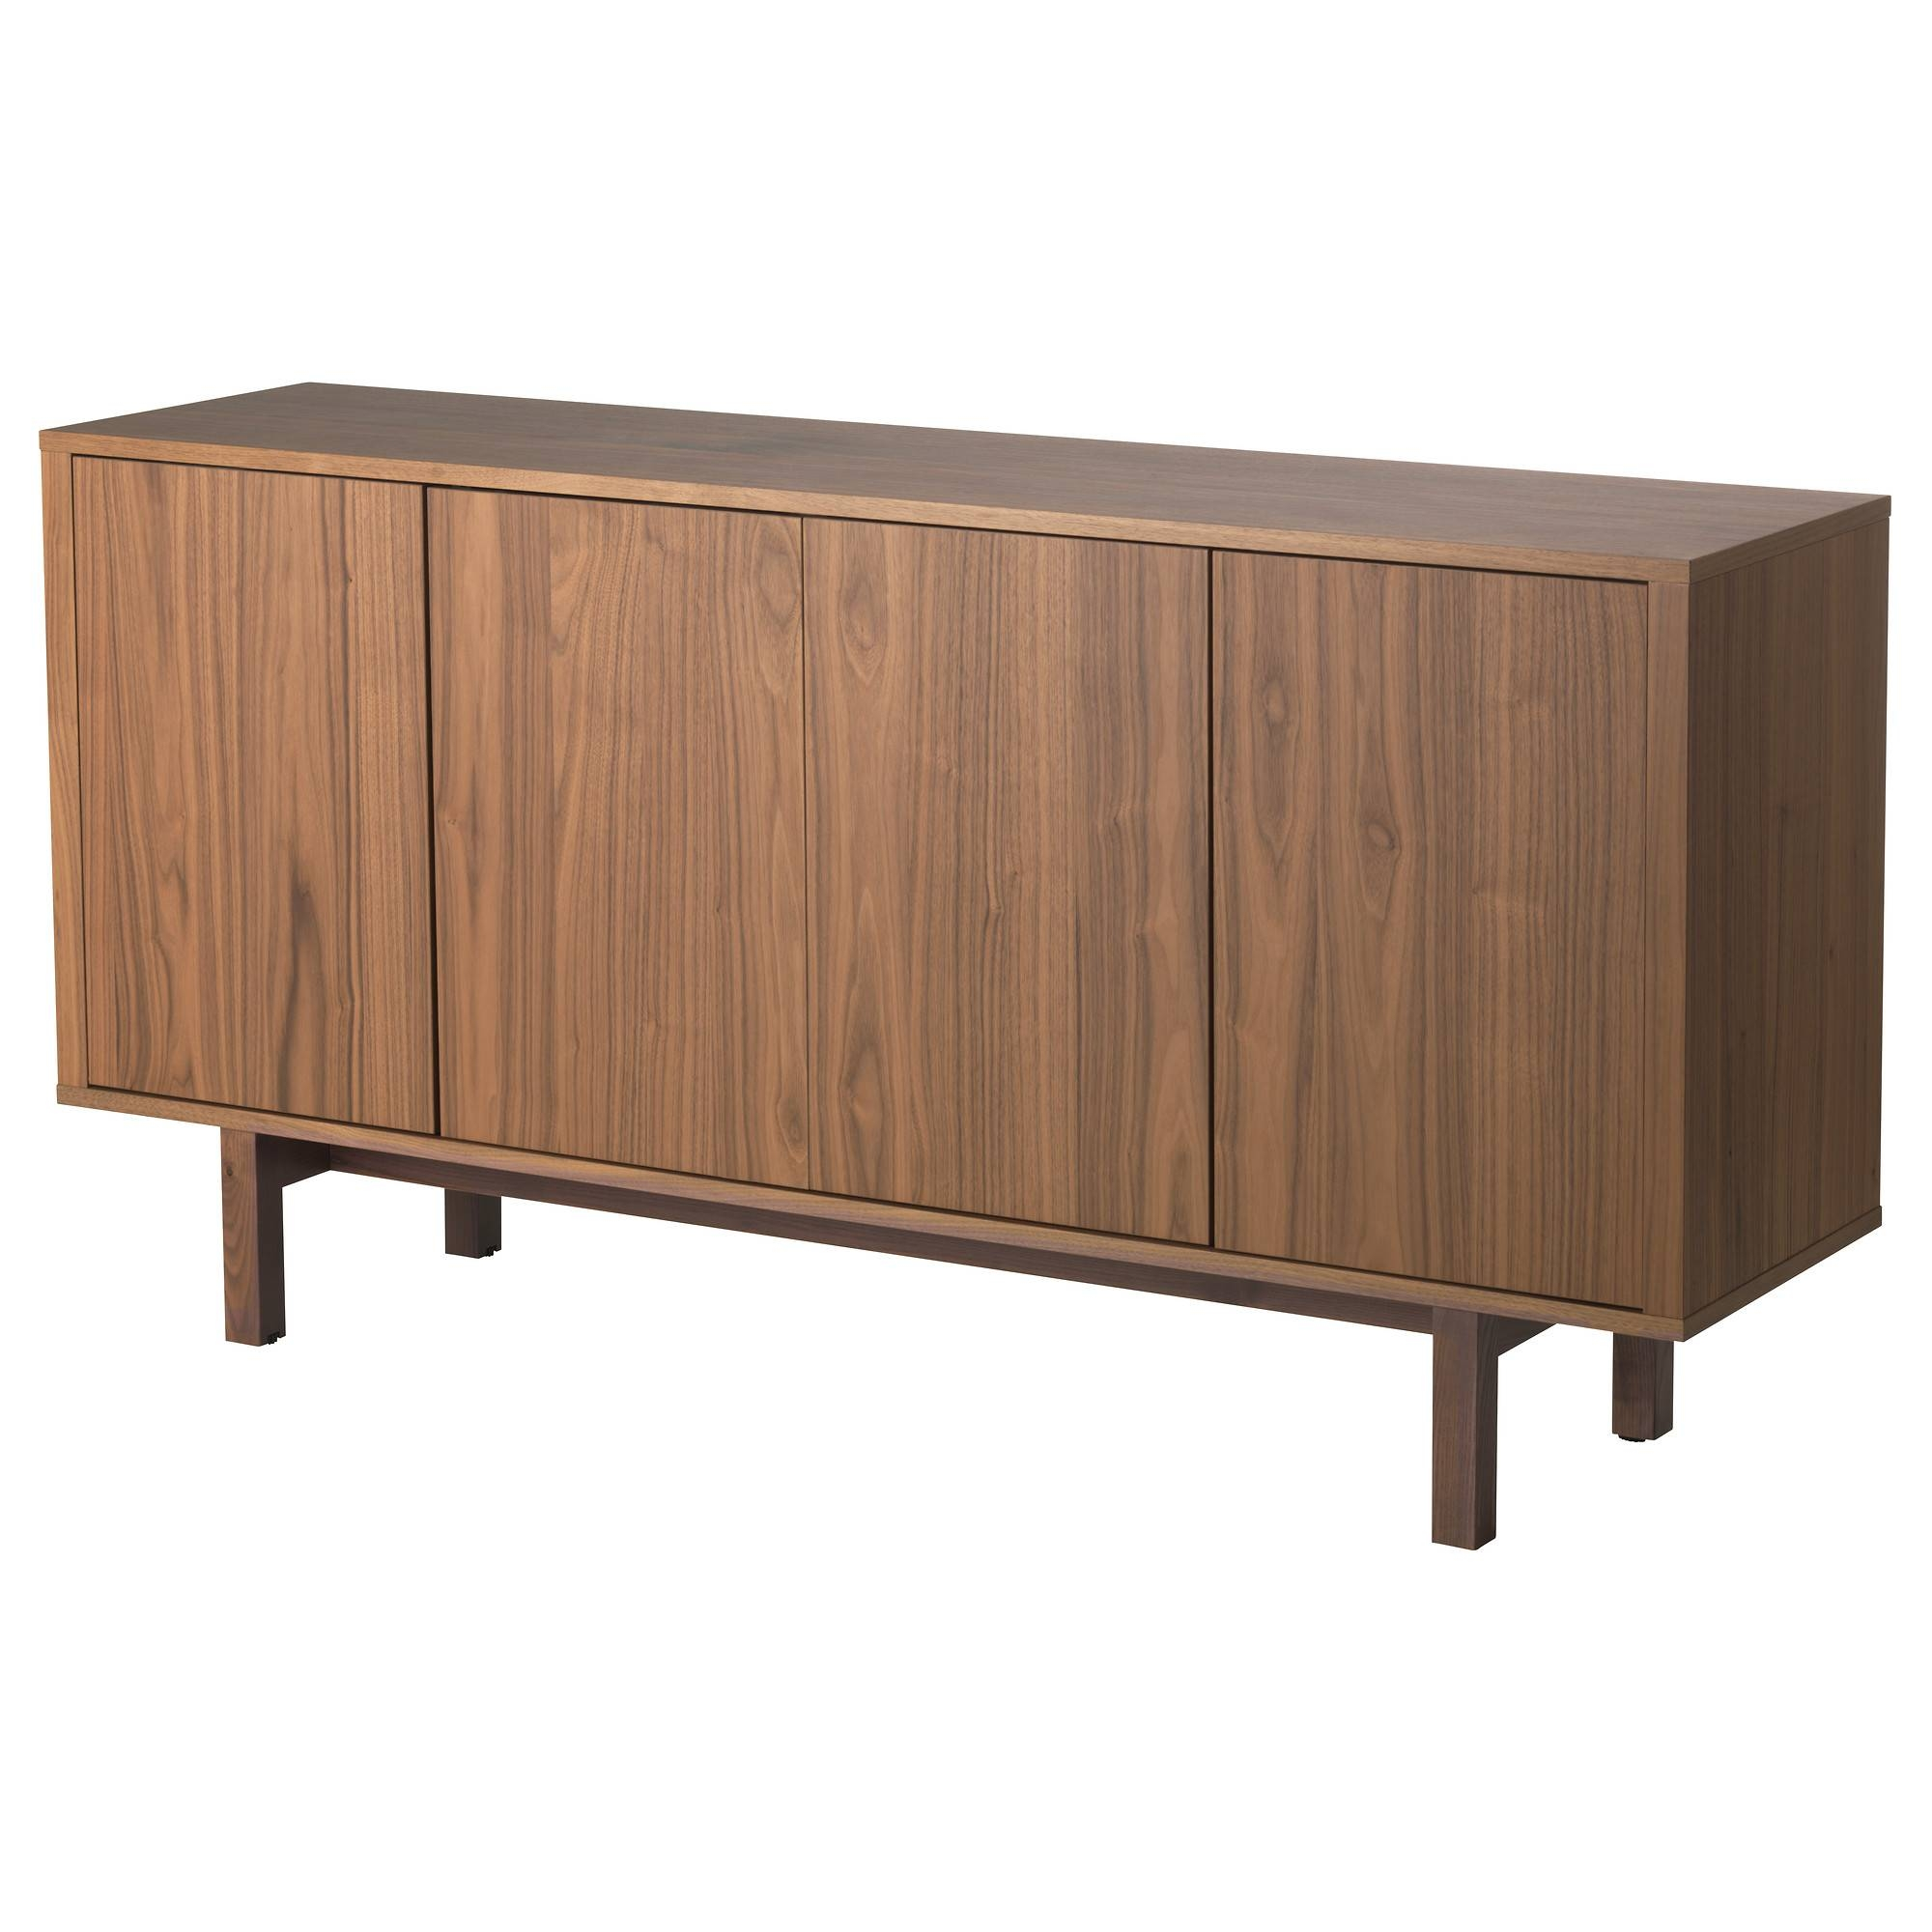 Buffet Tables & Sideboards - Ikea within Slim Sideboards (Image 8 of 30)